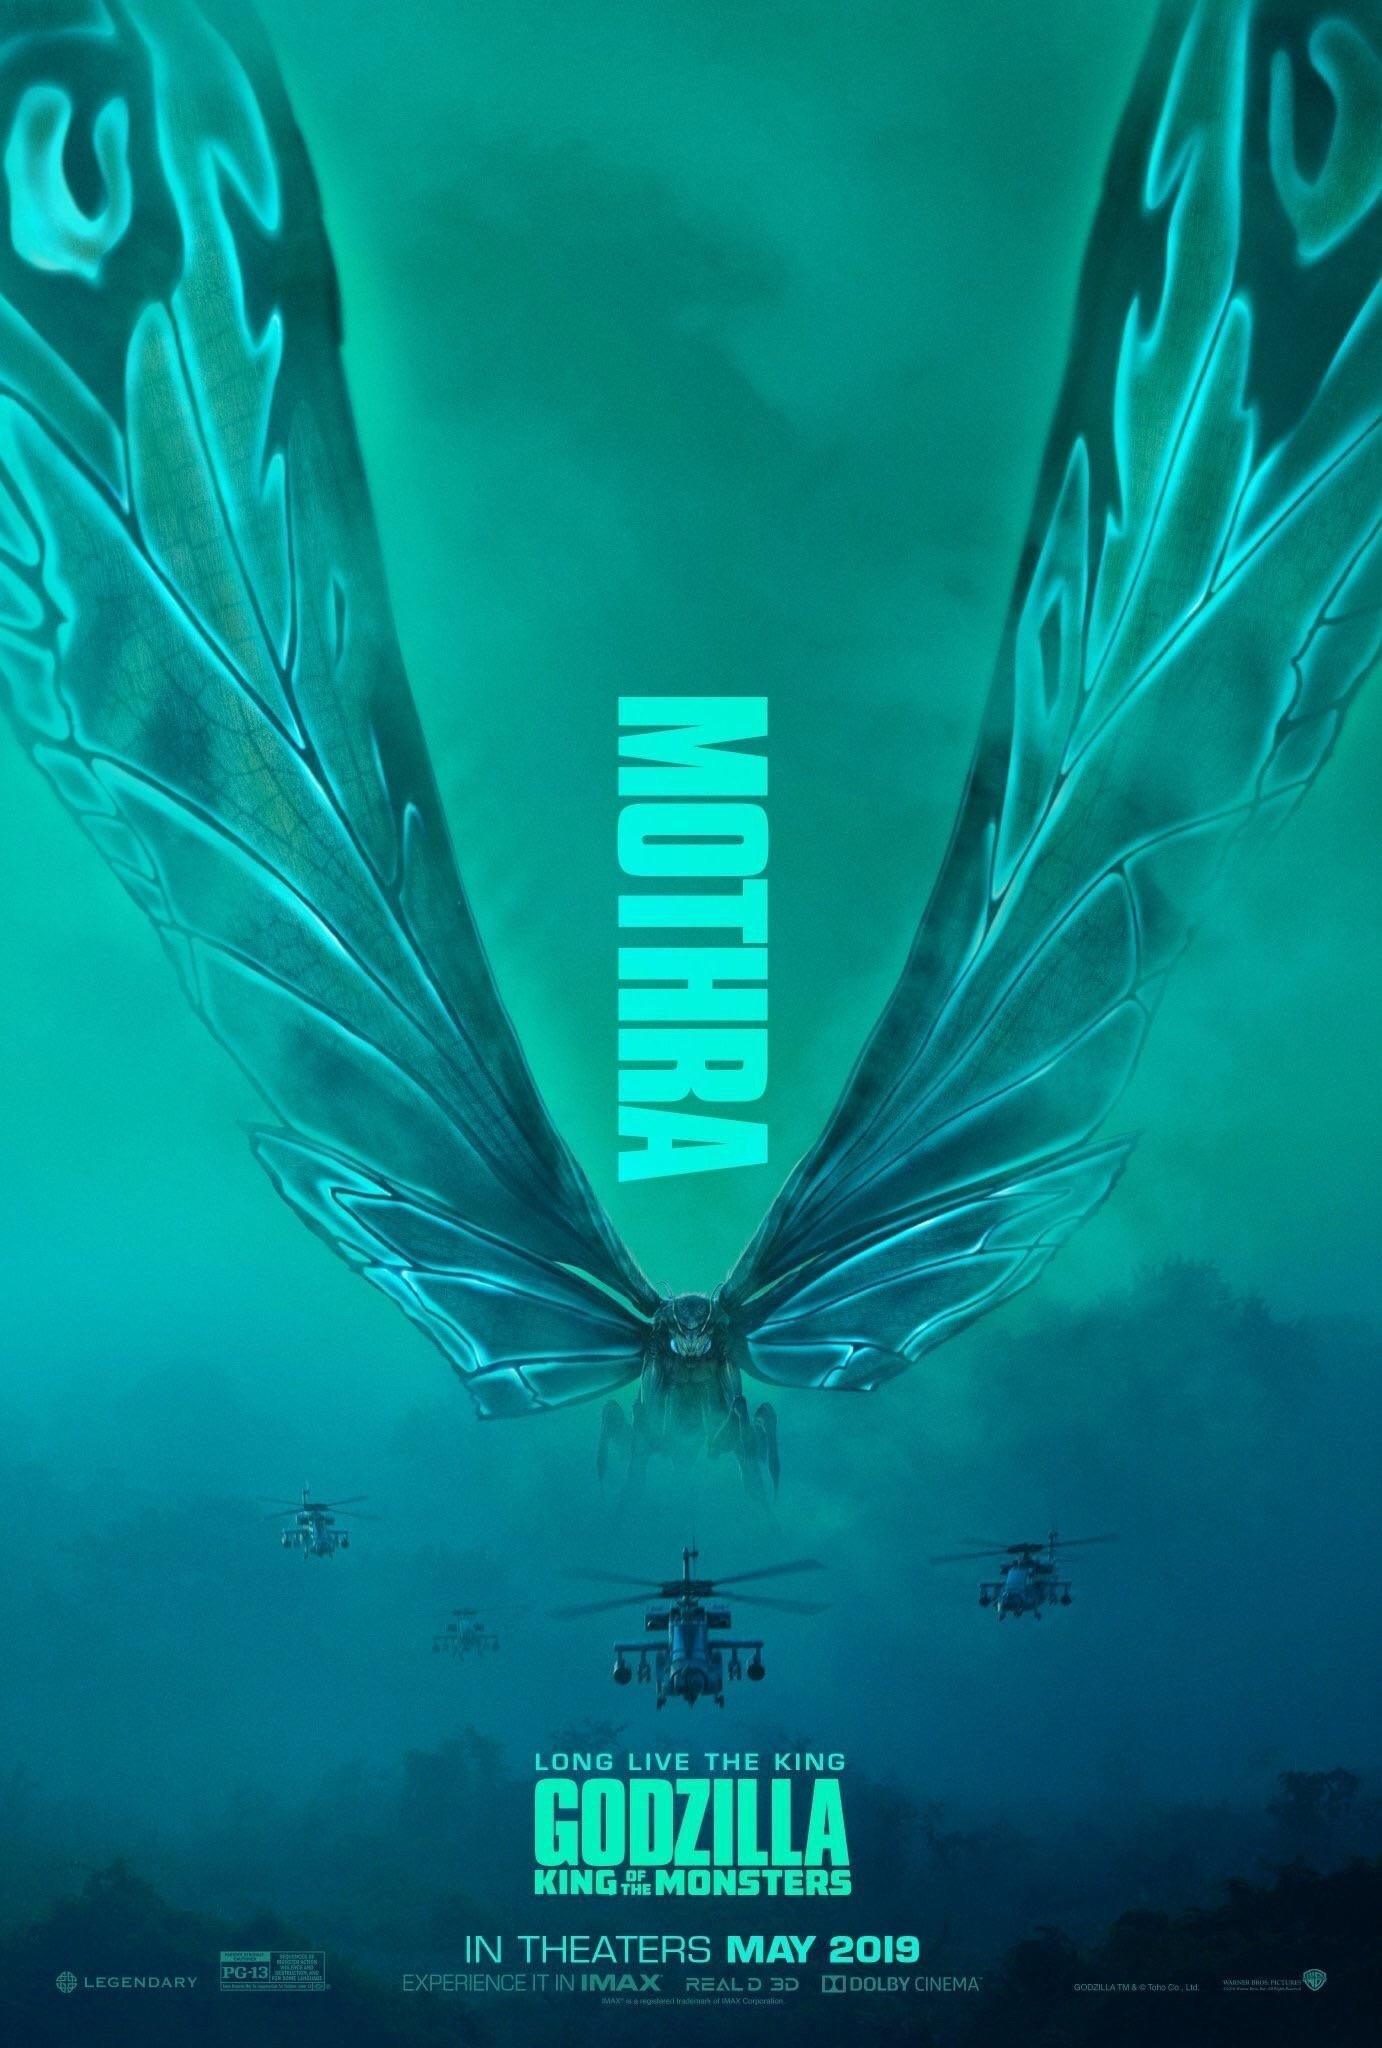 Poster du film Godzilla: King of the Monsters avec le Kaijū Mothra